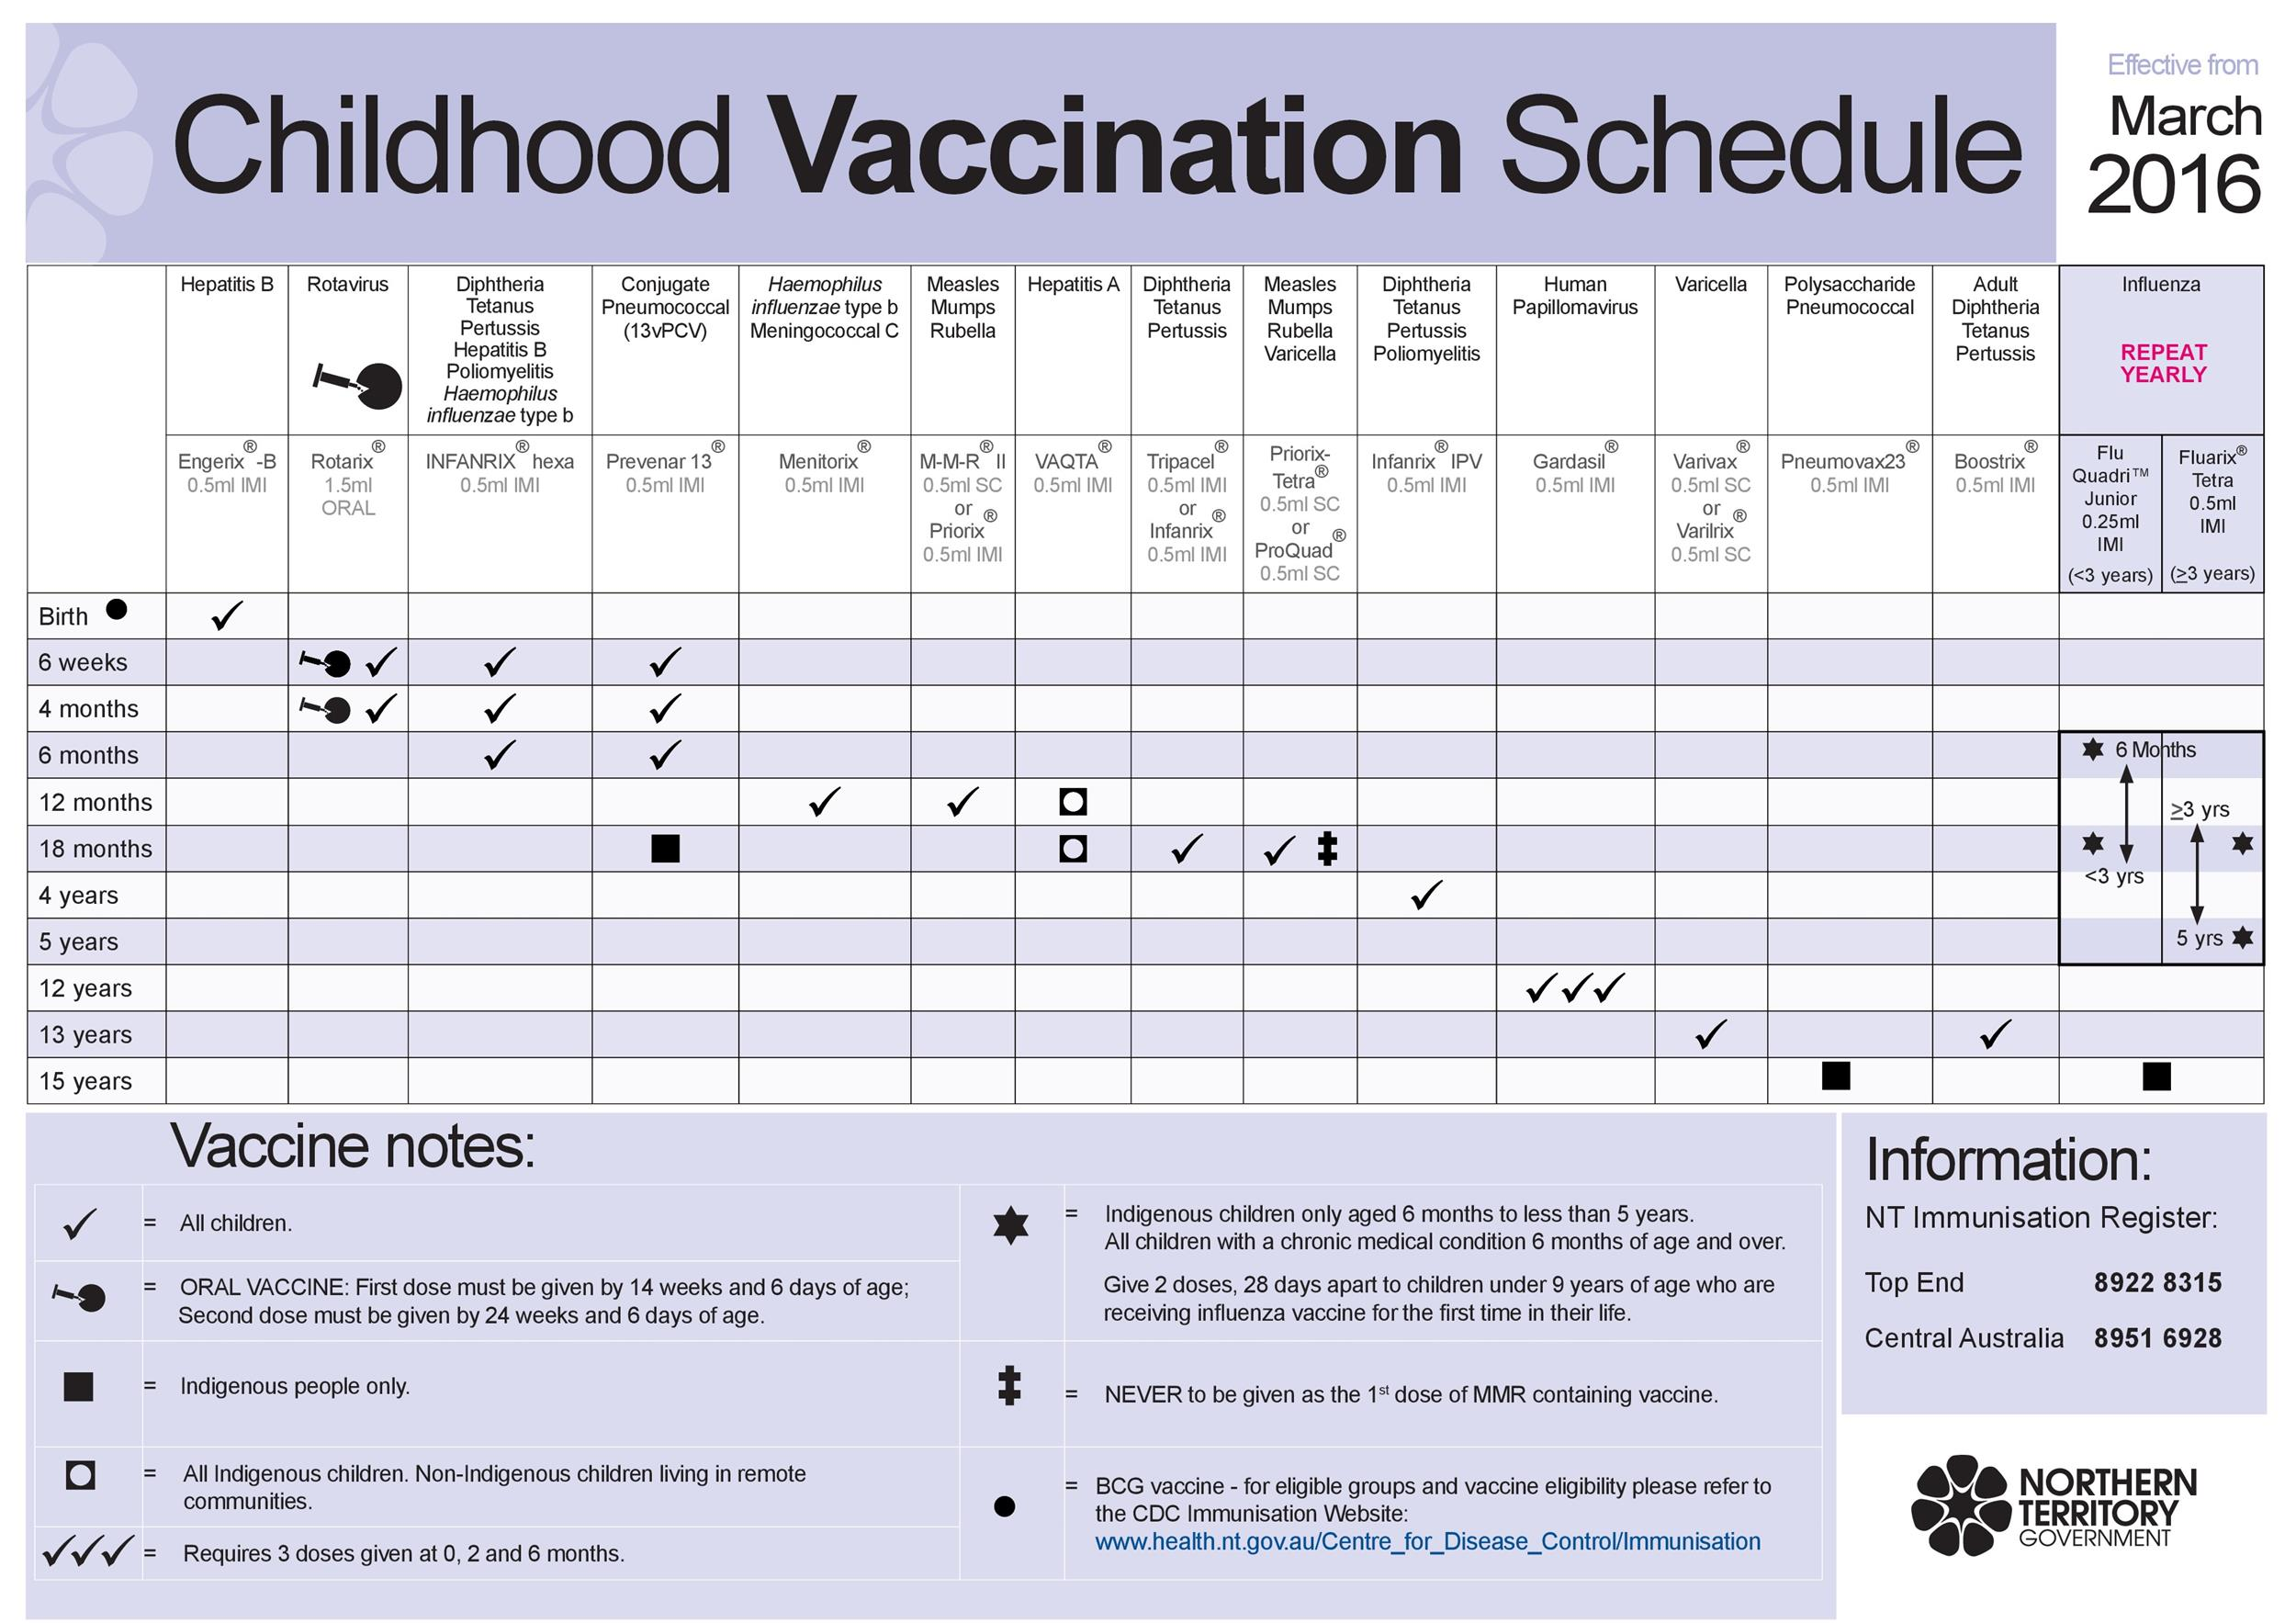 photograph about Immunization Cards Printable known as 38 Enlightening Immunization Vaccination Schedules [PDF] ᐅ